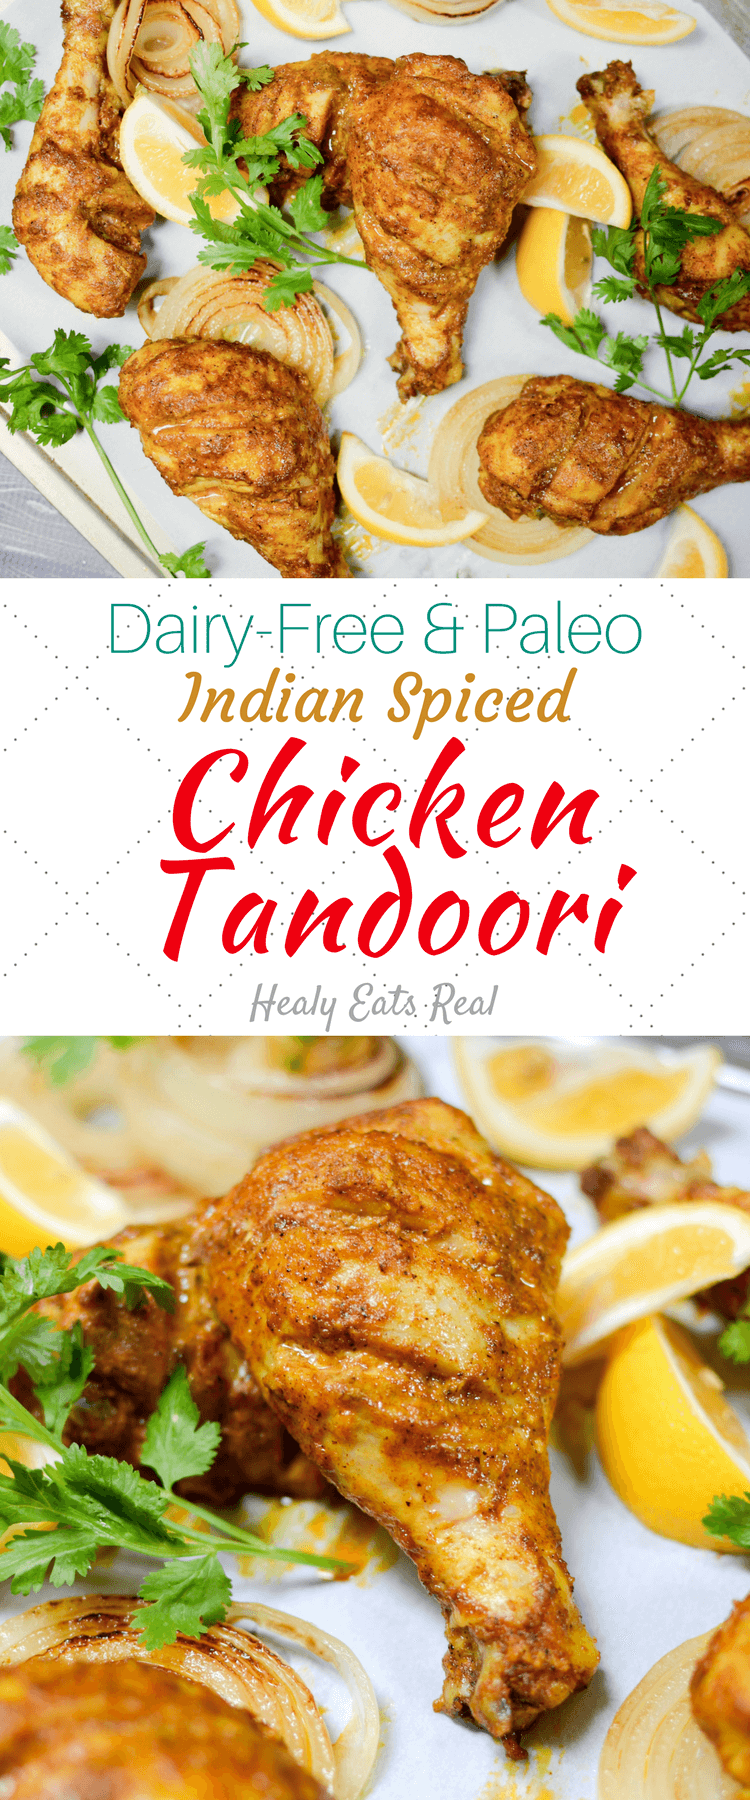 Chicken Tandoori Recipe (Dairy Free & Paleo)